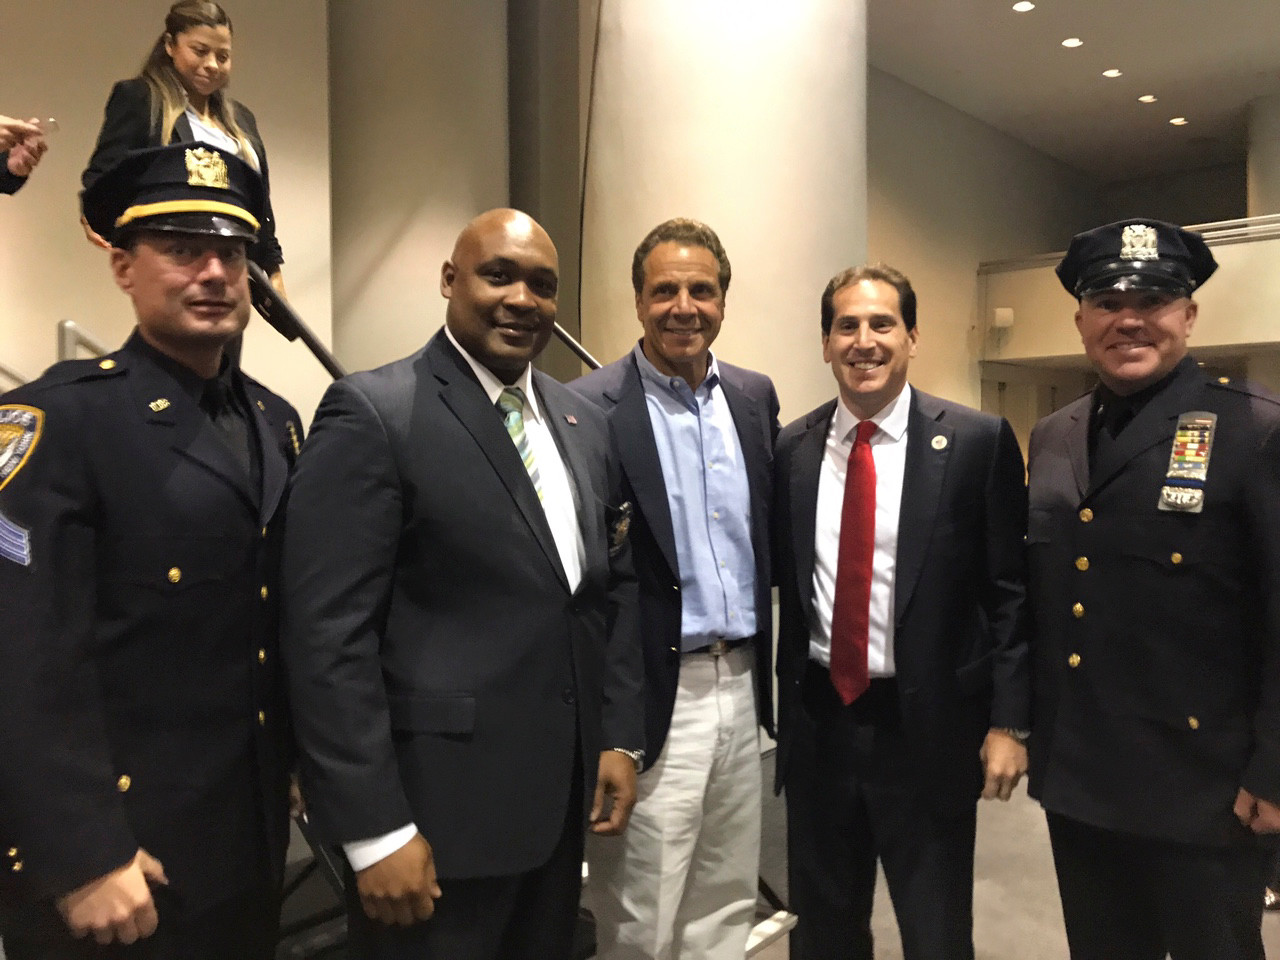 Long Beach police officer Rich DePalma, far left, detective Anderson Joseph, Governor Cuomo, State Sen. Todd Kaminsky and police officer Darren Brennan.